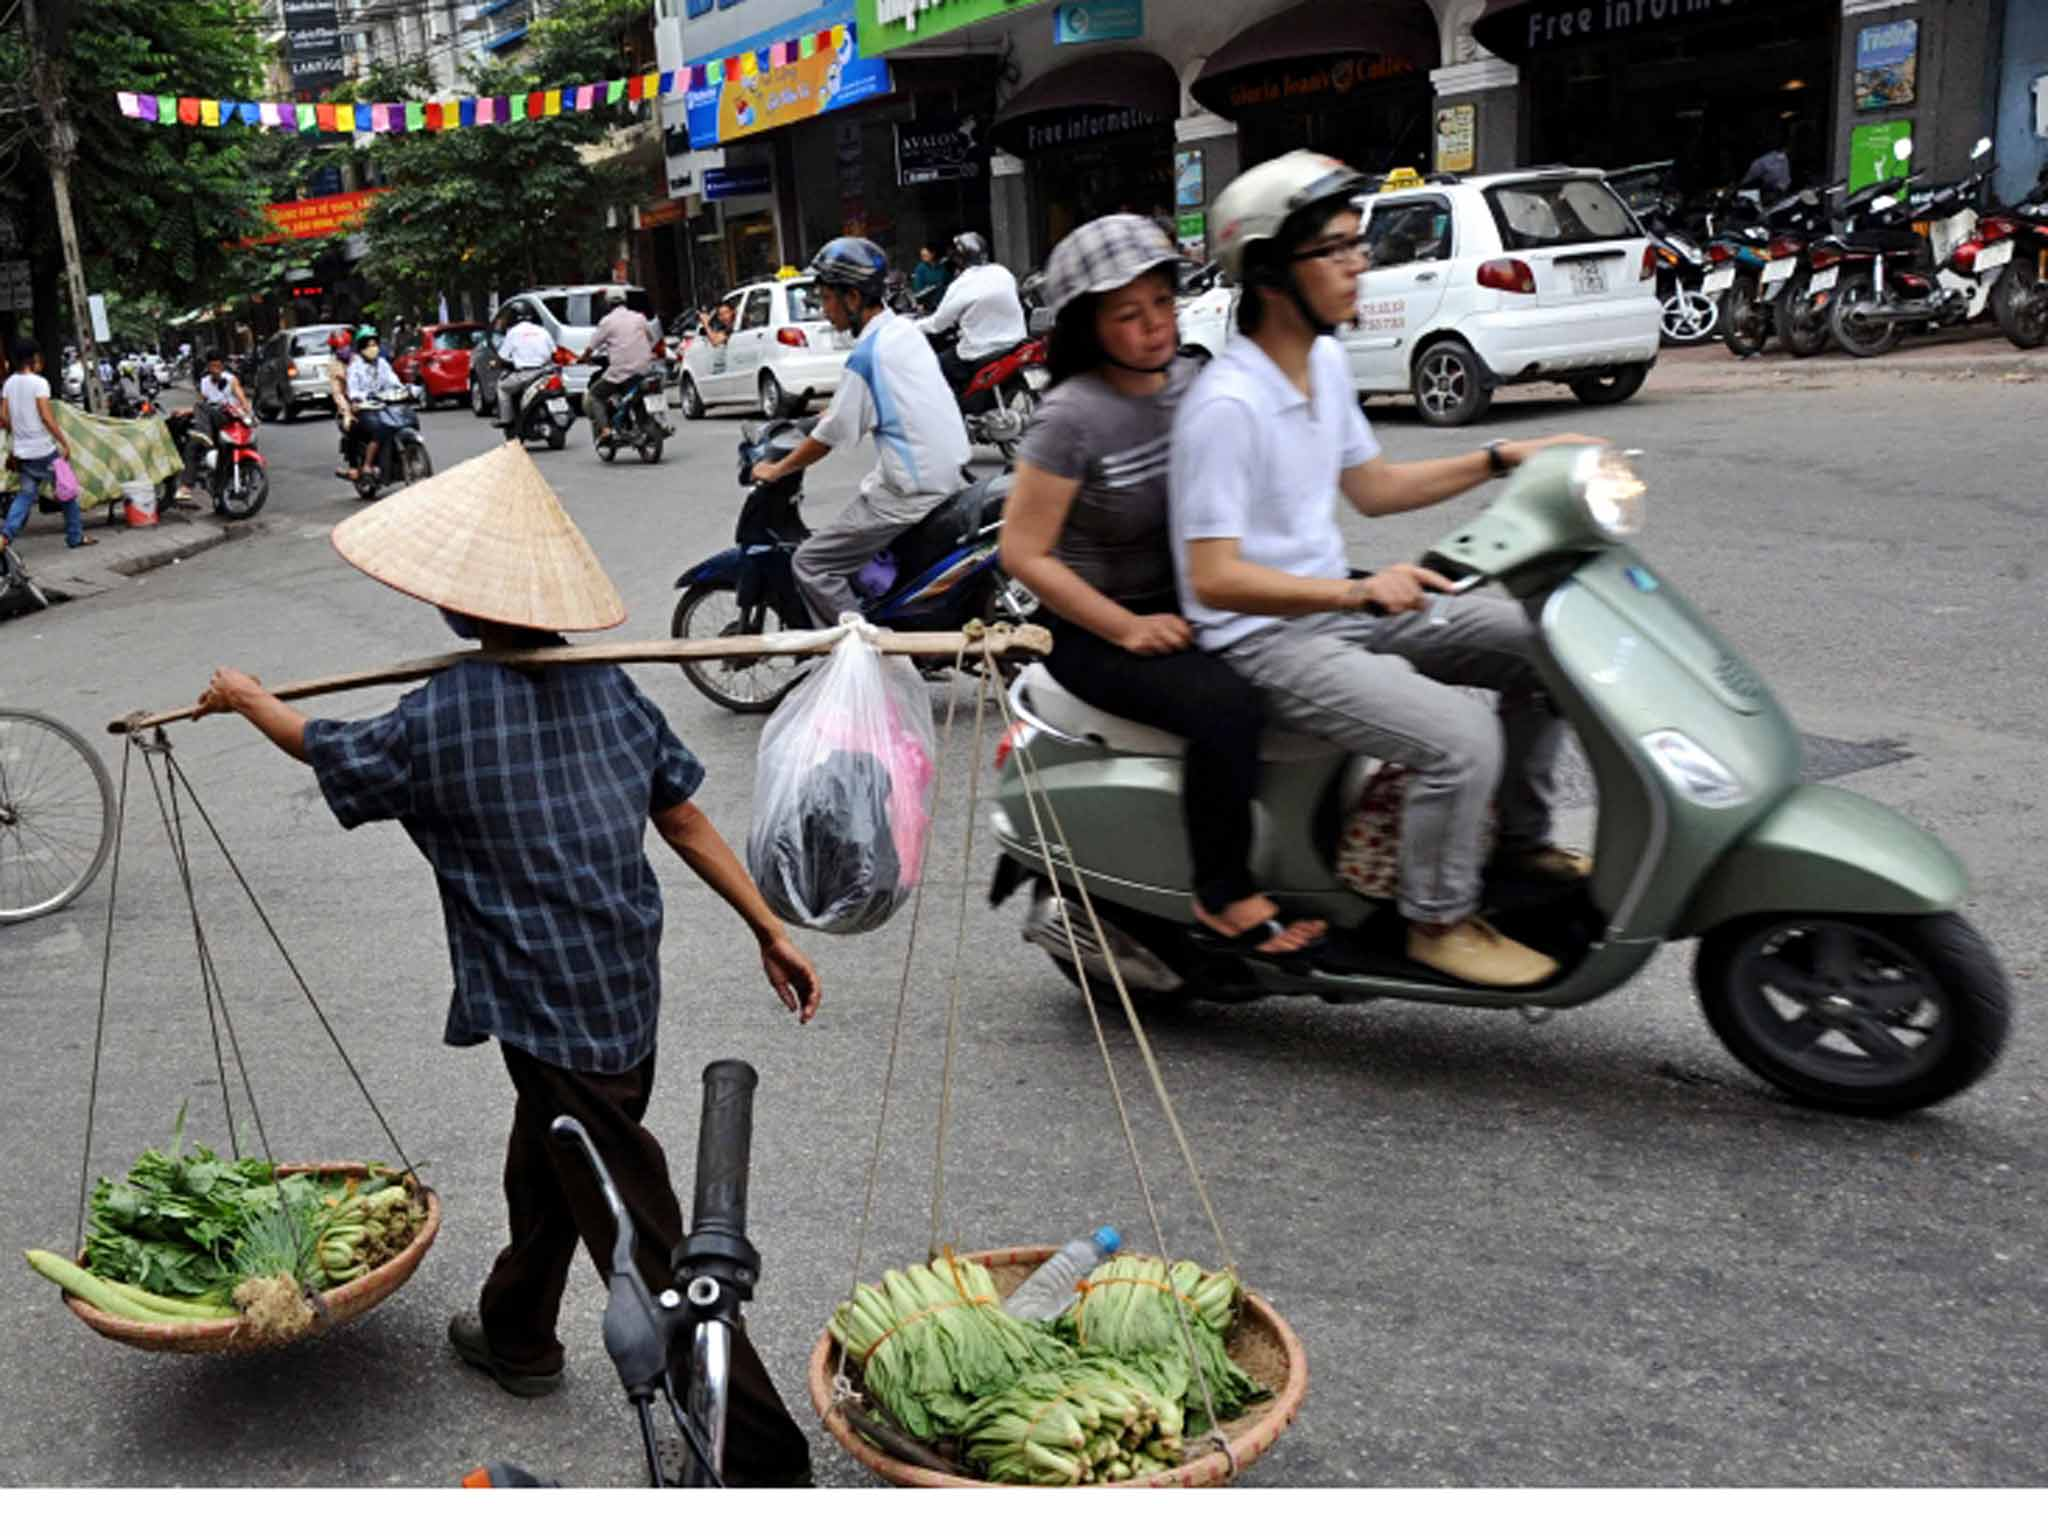 Hanoi travel tips: Where to go and what to see in 48 hours